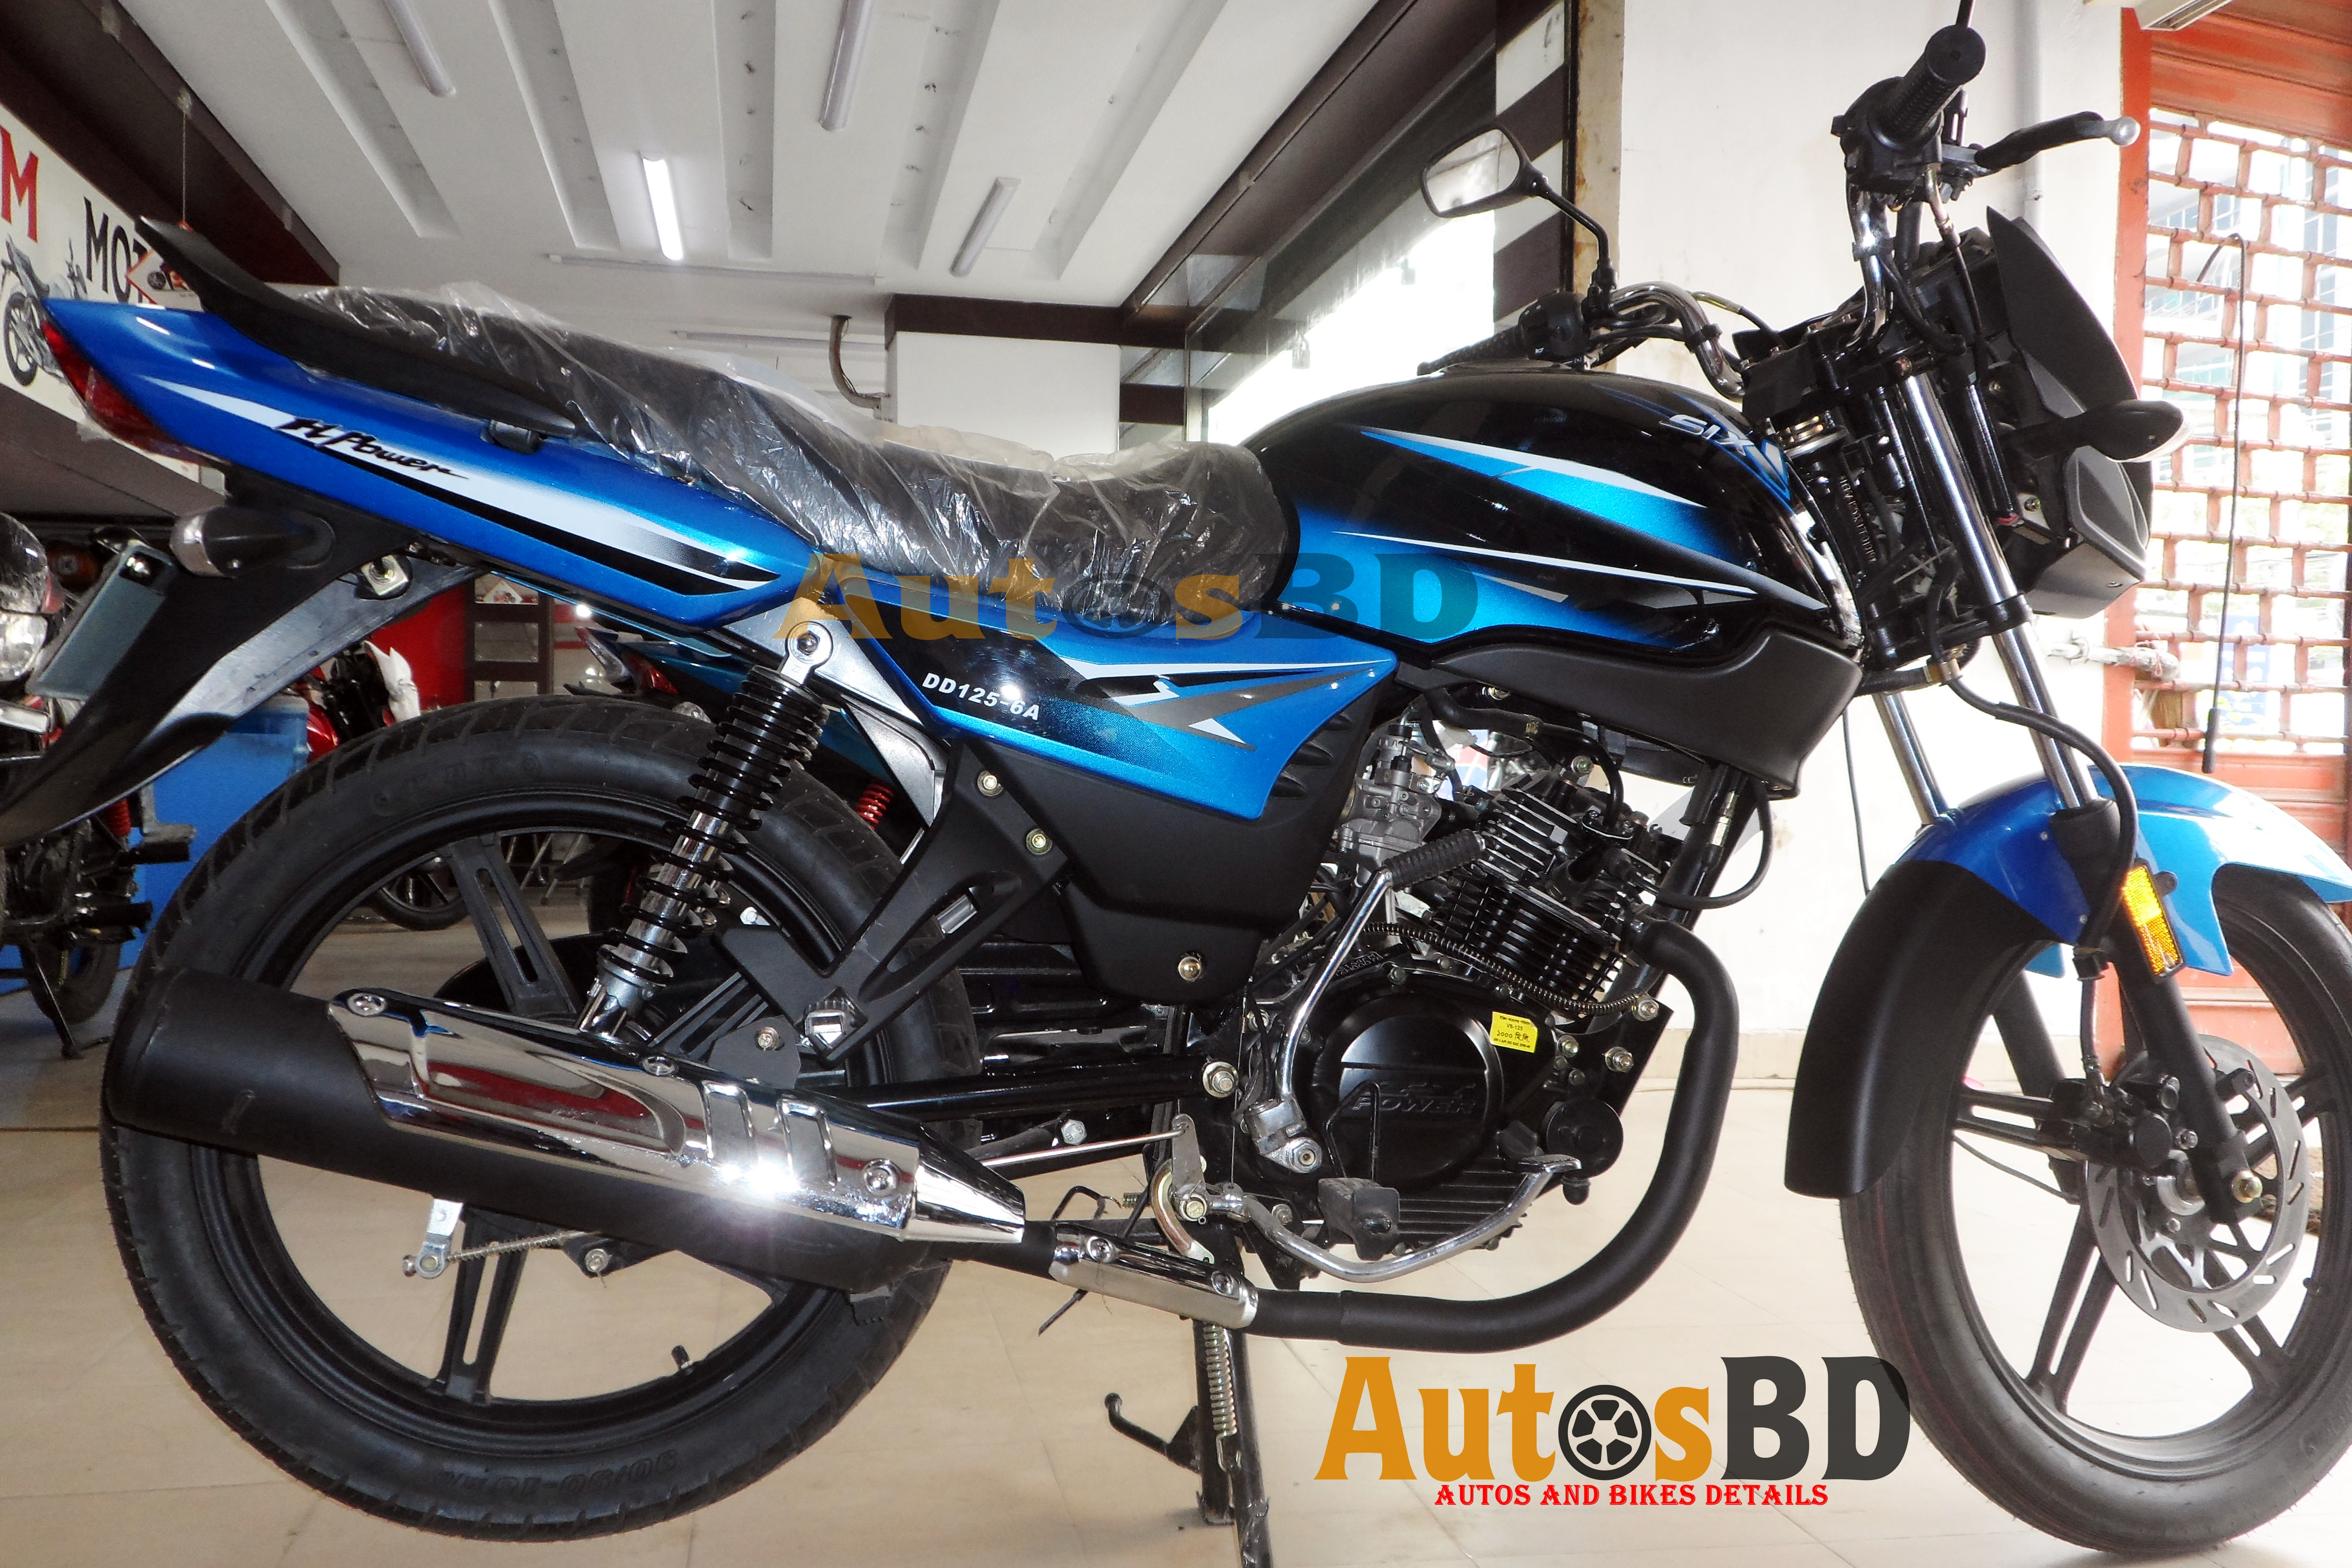 H Power V Six Motorcycle Price in Bangladesh